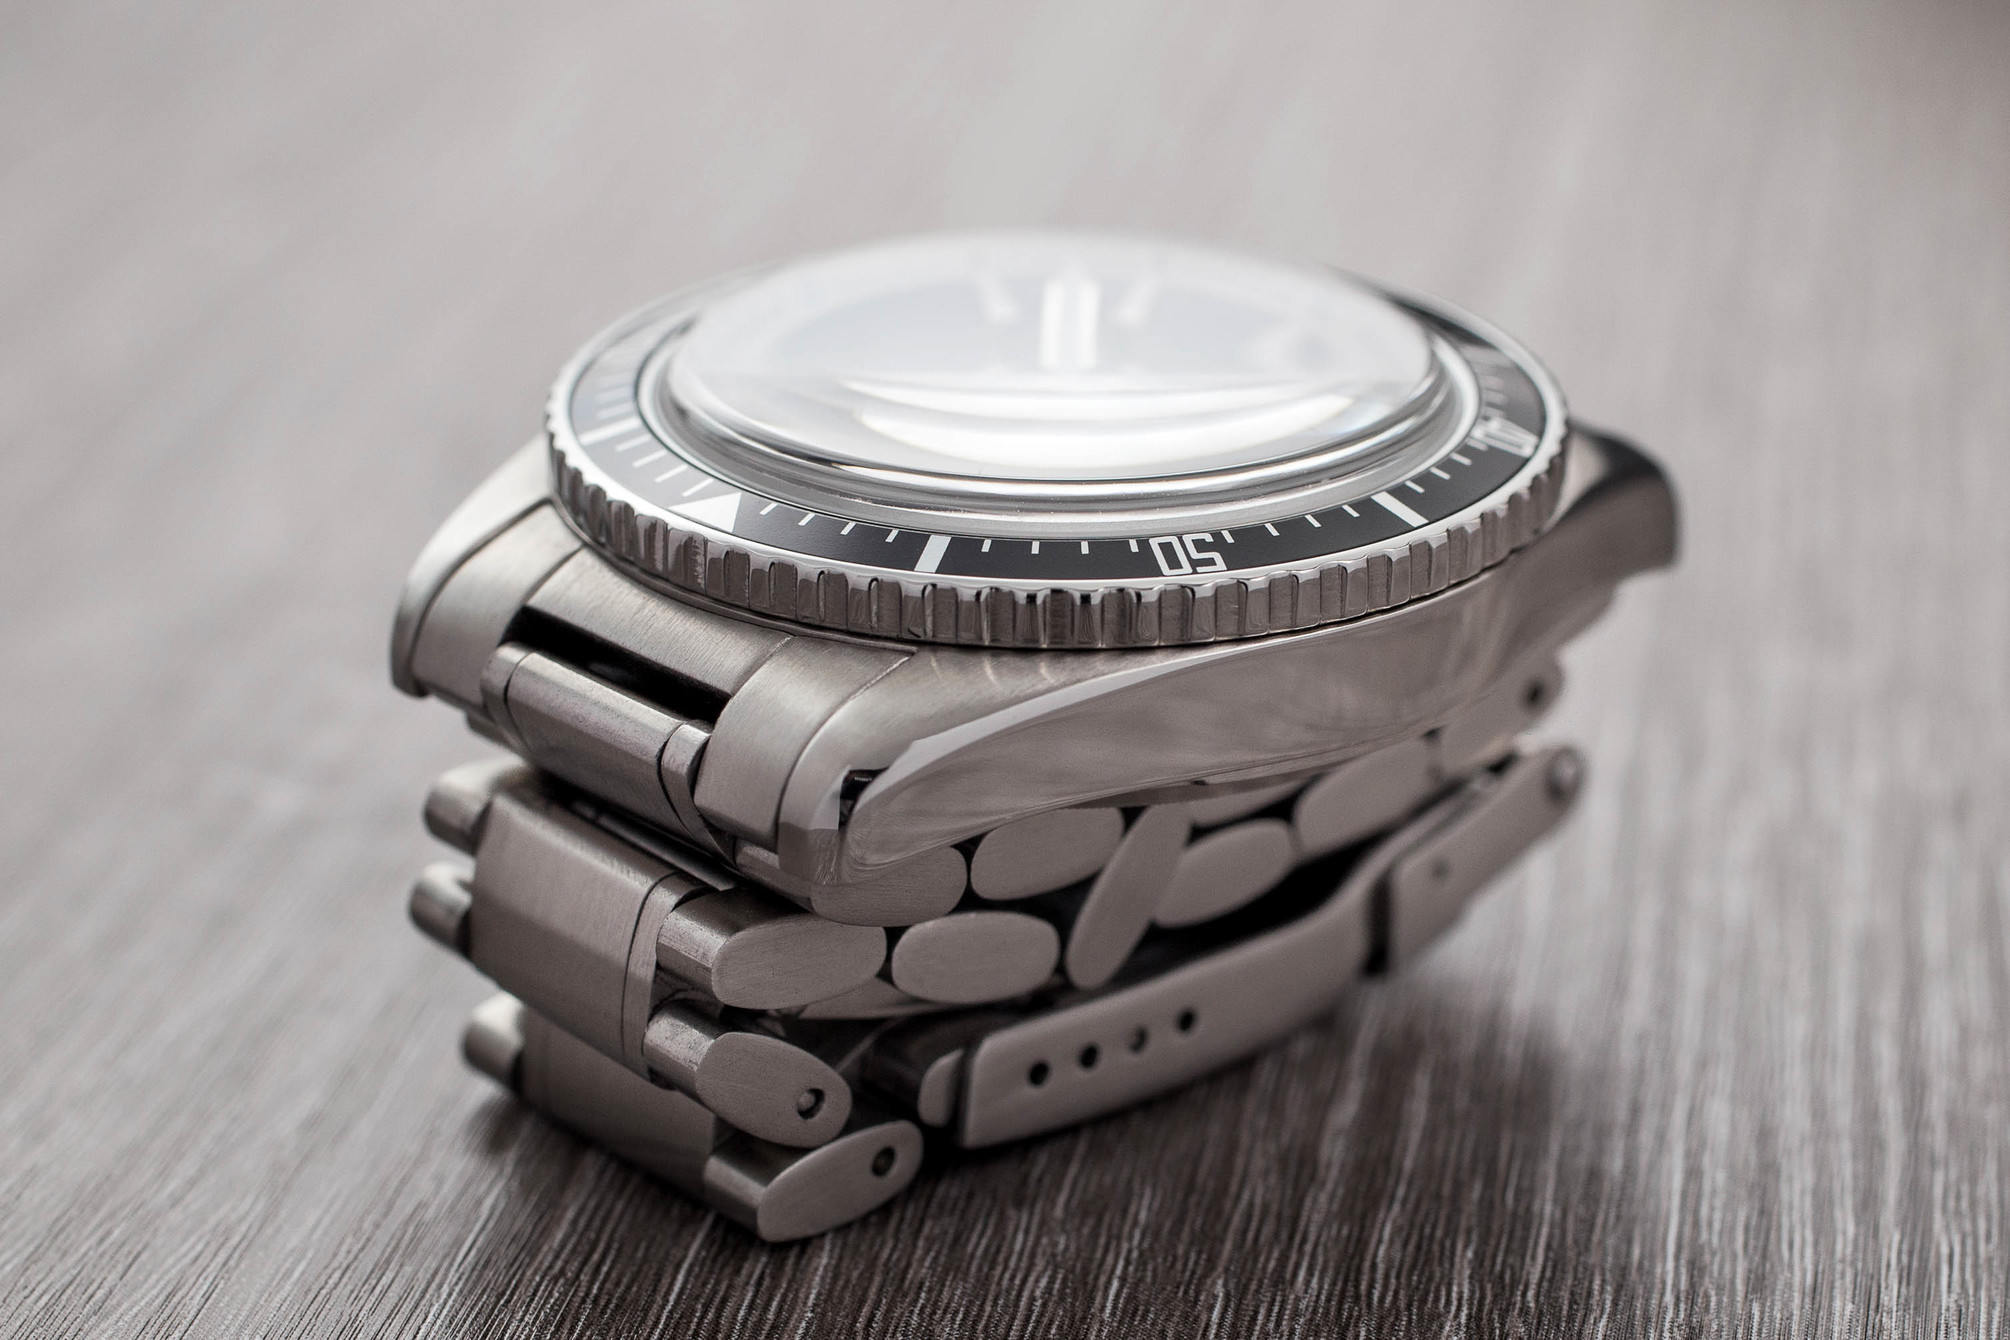 Maen Hudson Automatic 38mm folded